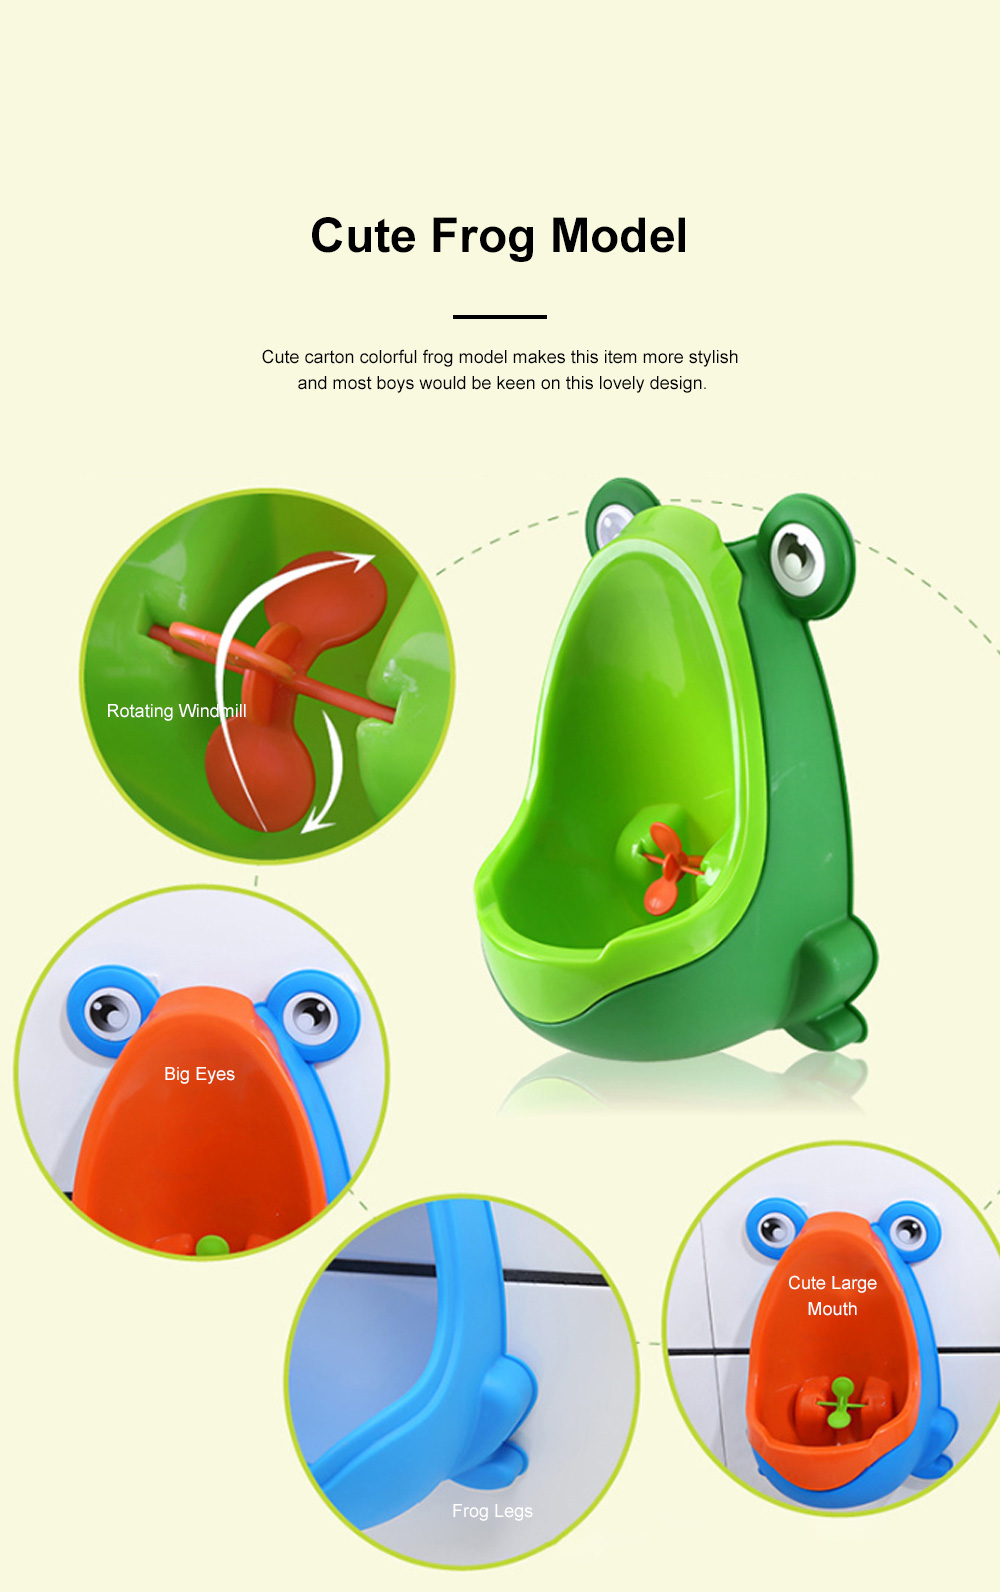 Cute Frog Model Wall Hanging Children Standing Urinal Separable Strong Suction Toilet Training for Boys 1